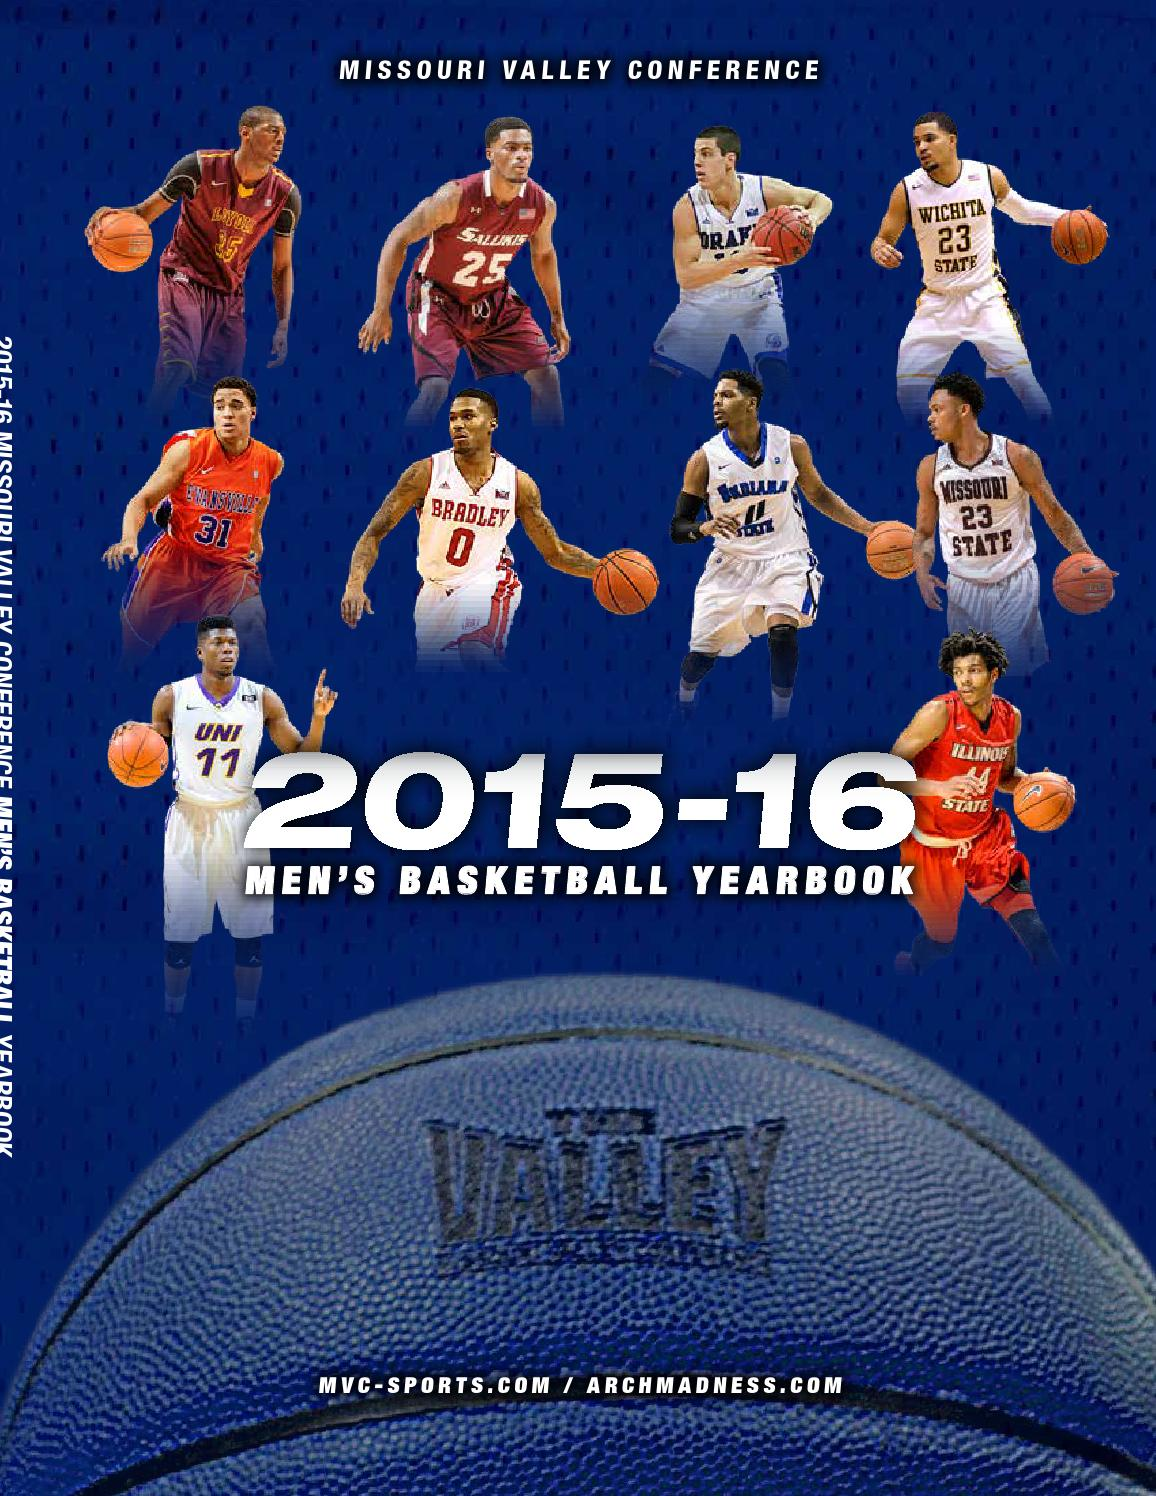 2015-16 MVC Men s Basketball Media Guide by Missouri Valley Conference -  issuu 0b87ec4a3c0